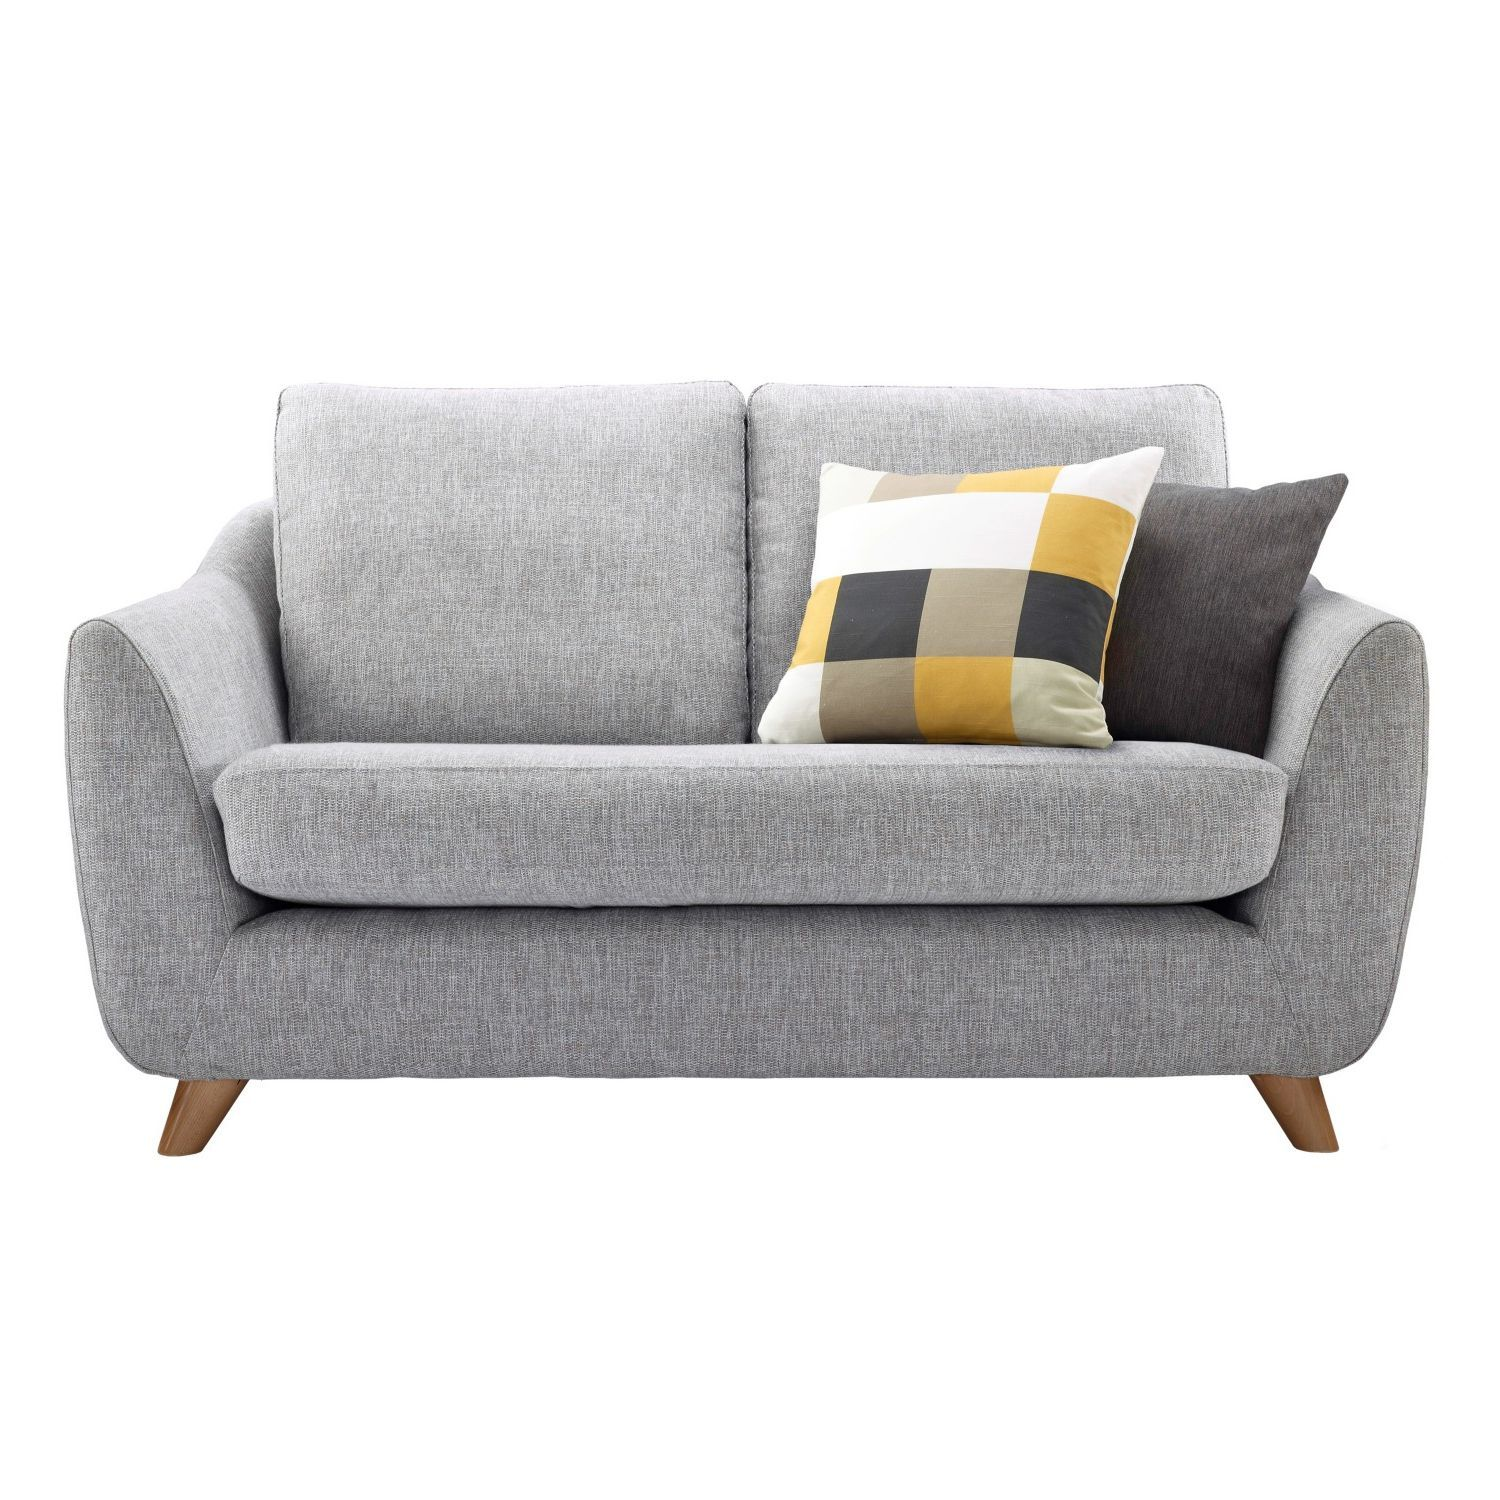 small couches for bedrooms smallsofasetsmallsofa pictures